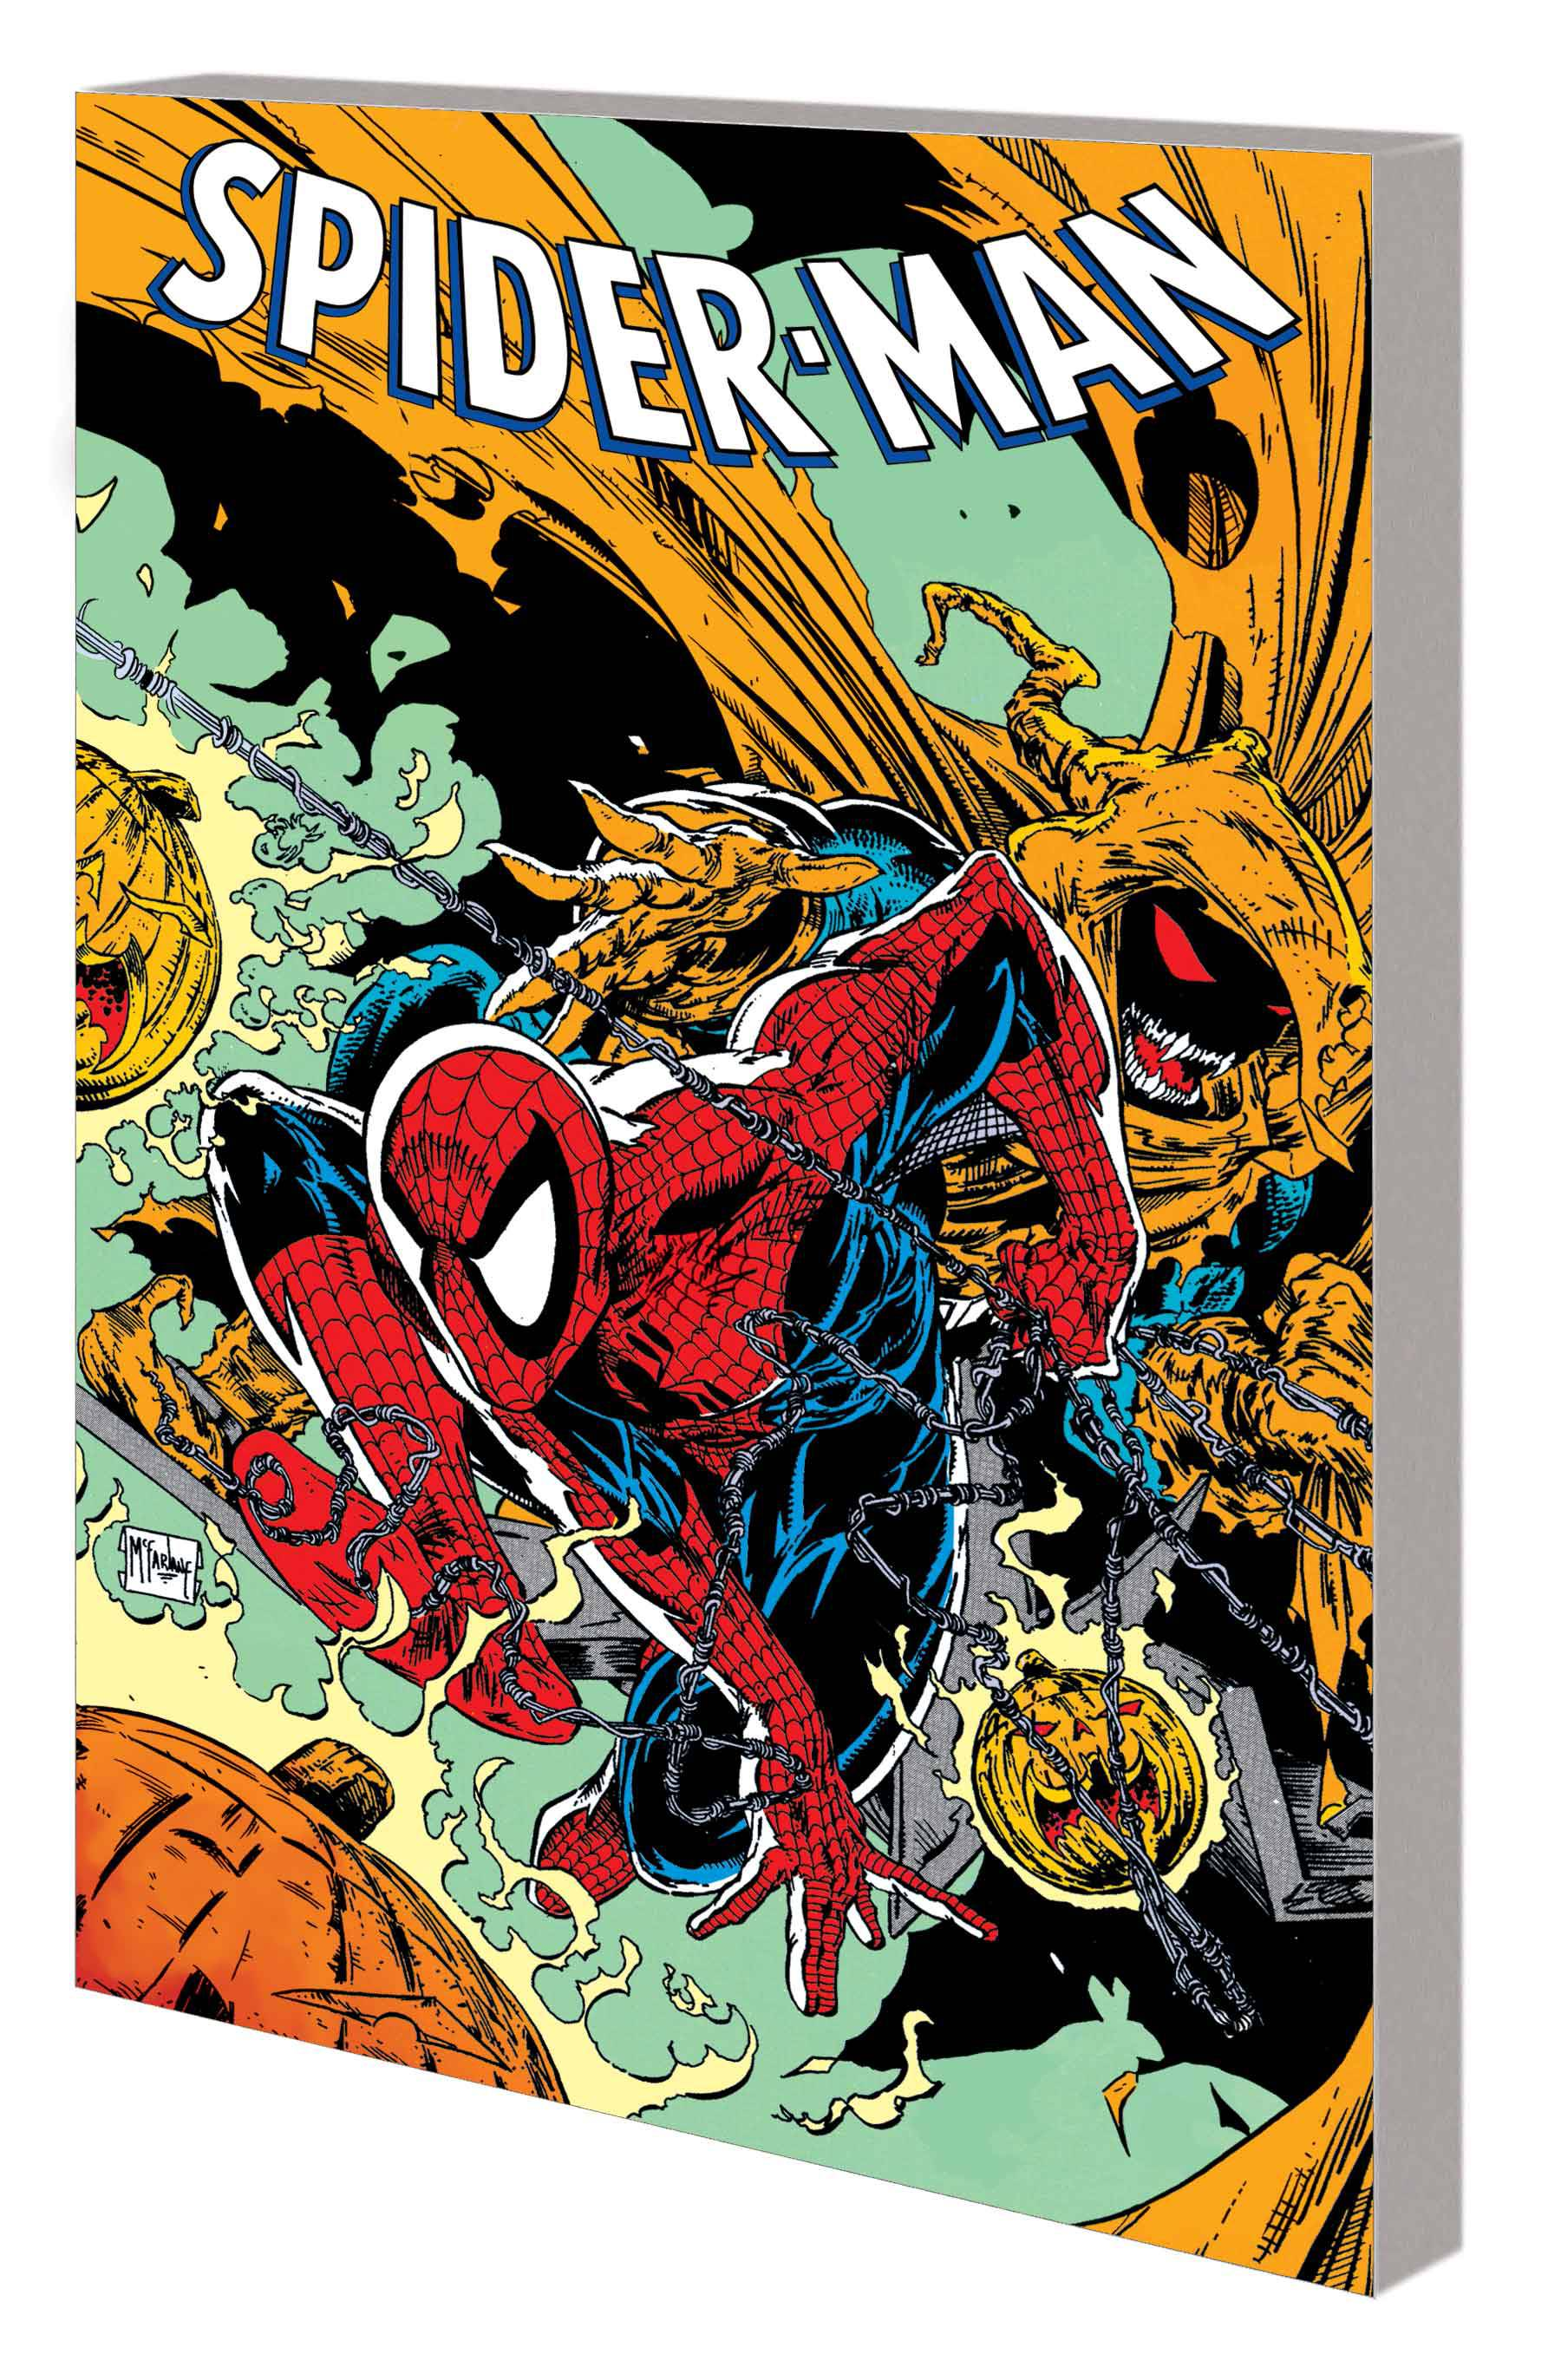 SPIDER-MAN BY TODD MCFARLANE COMPLETE COLLECTION